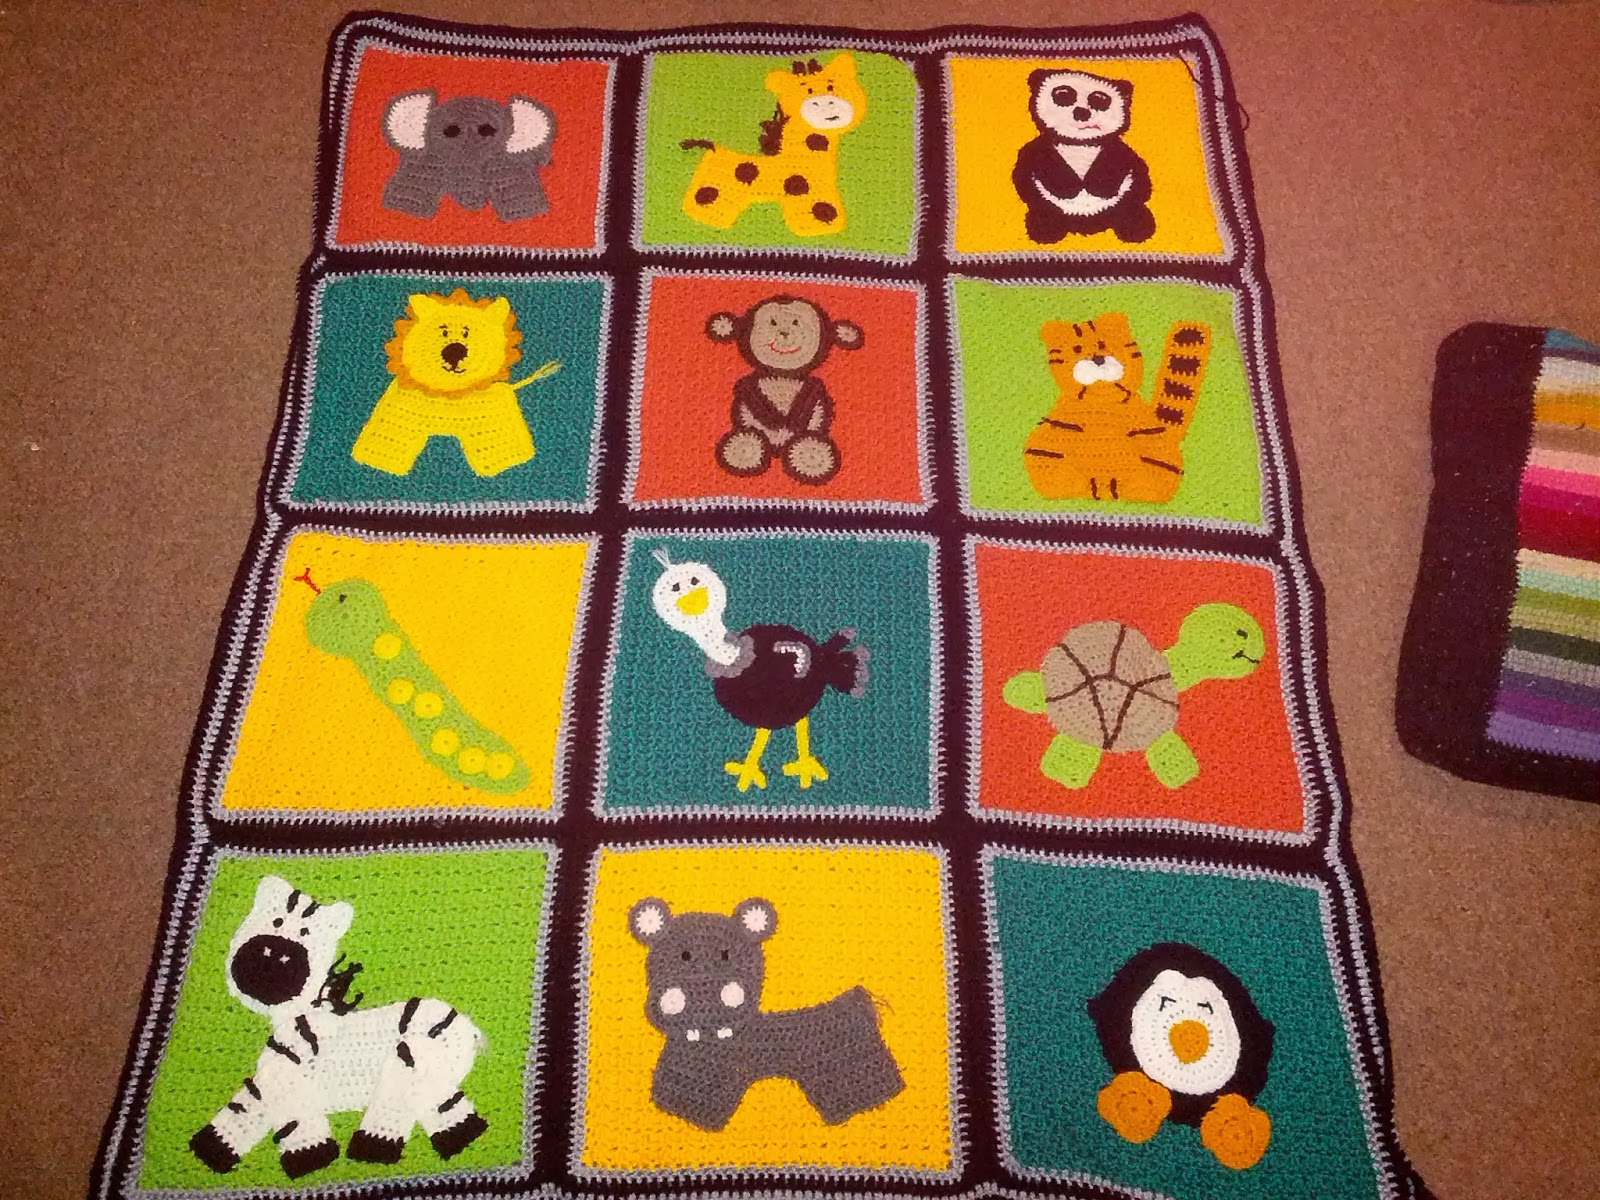 Blooming Lovely: Finished Item - Crochet Zoo Blanket